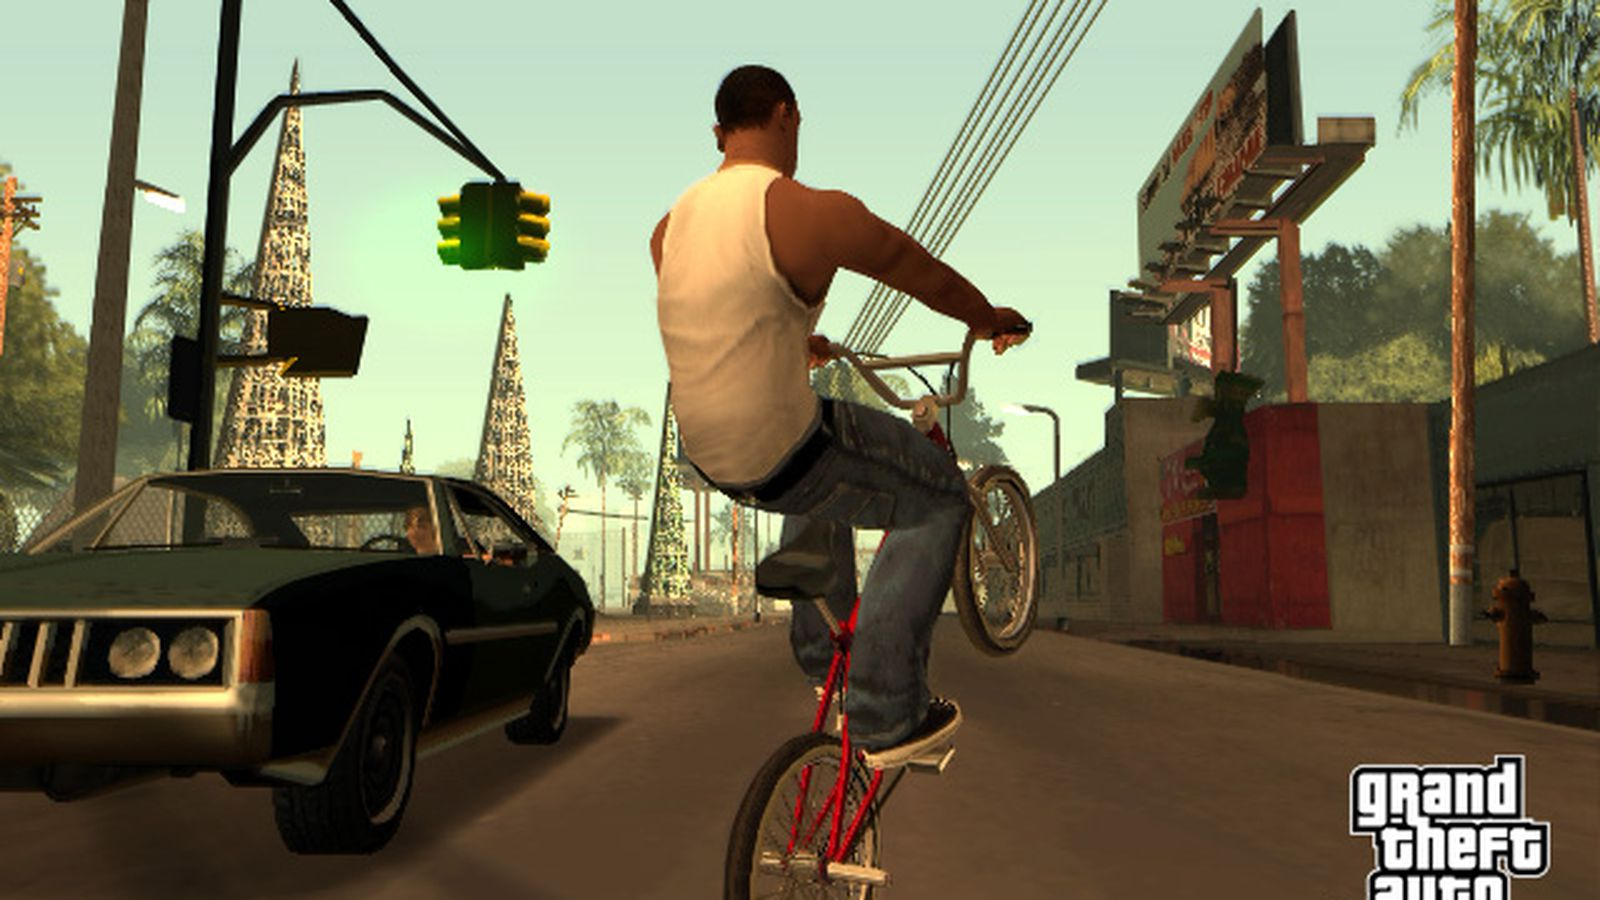 download free pc game gta vice city full version